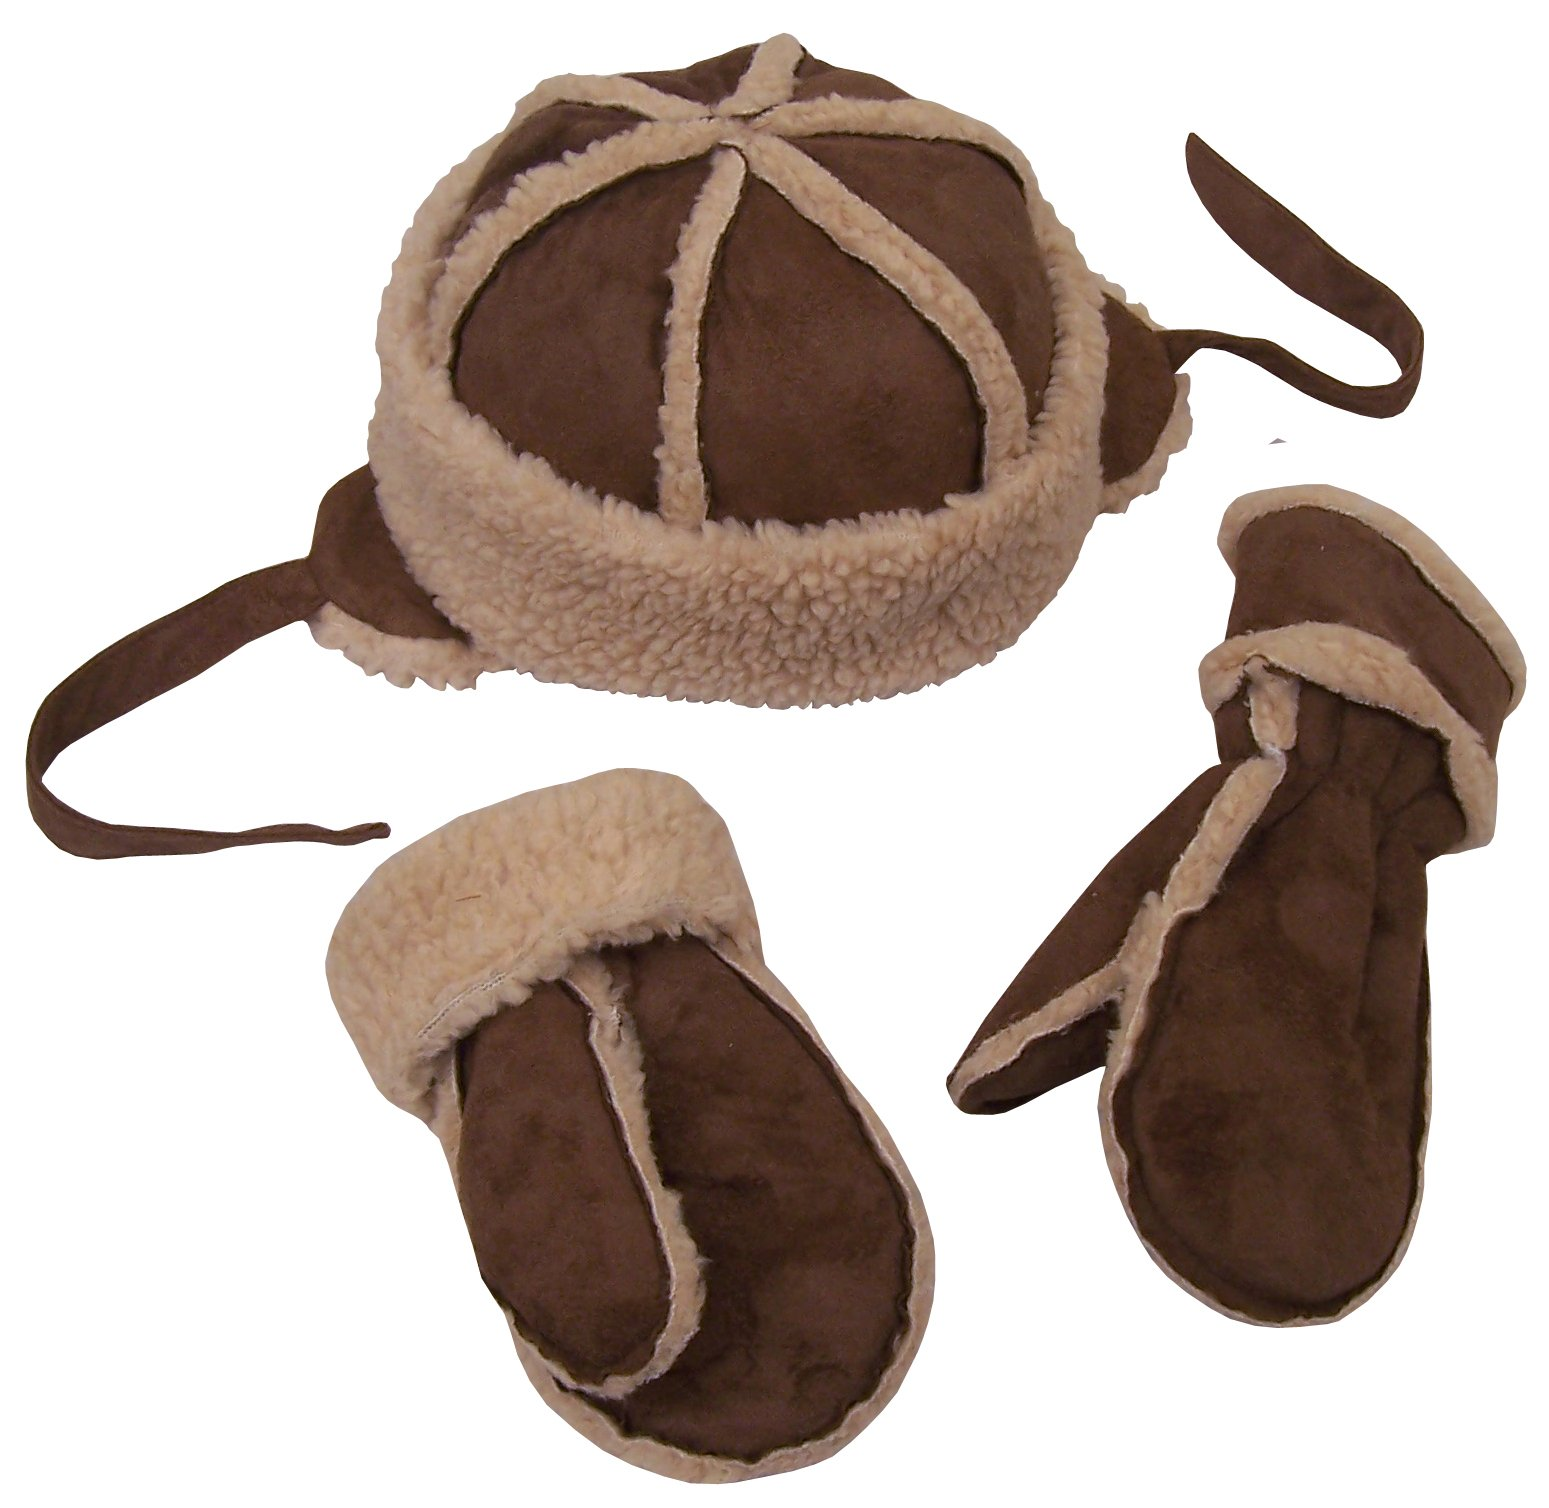 NICE CAPS Little Kids and Toddler Unisex Suede Micro Fiber Hat and Mitten Winter Snow Headwear Accessory Set With Sherpa Lining - Fits Boys Girls Sizes